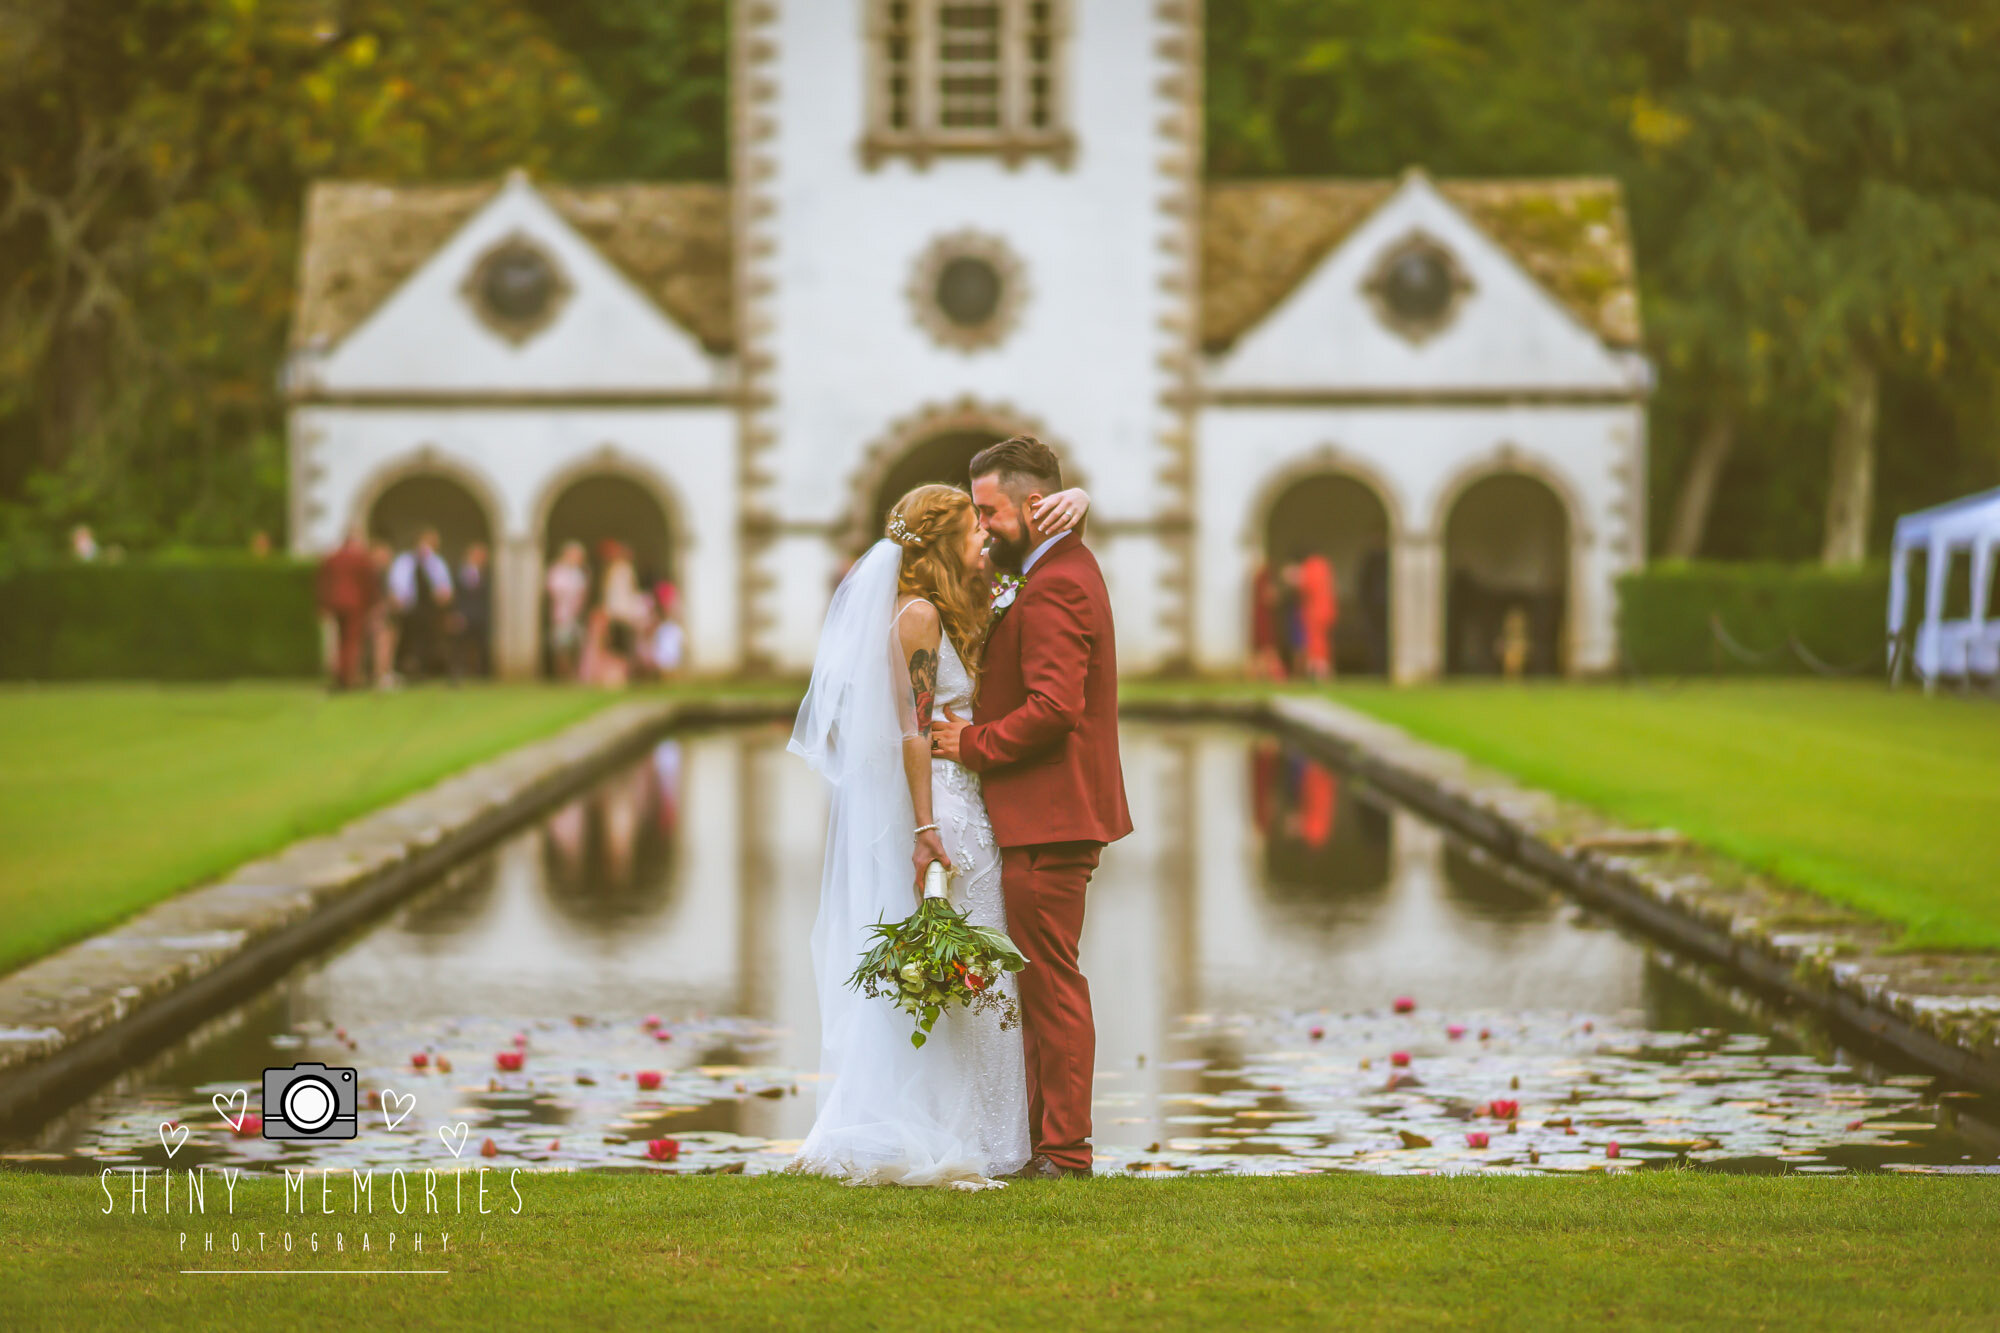 Shiny Memories North Wales Wedding Photographers - The Beaches - Pentre Mawr Country House-13.jpg